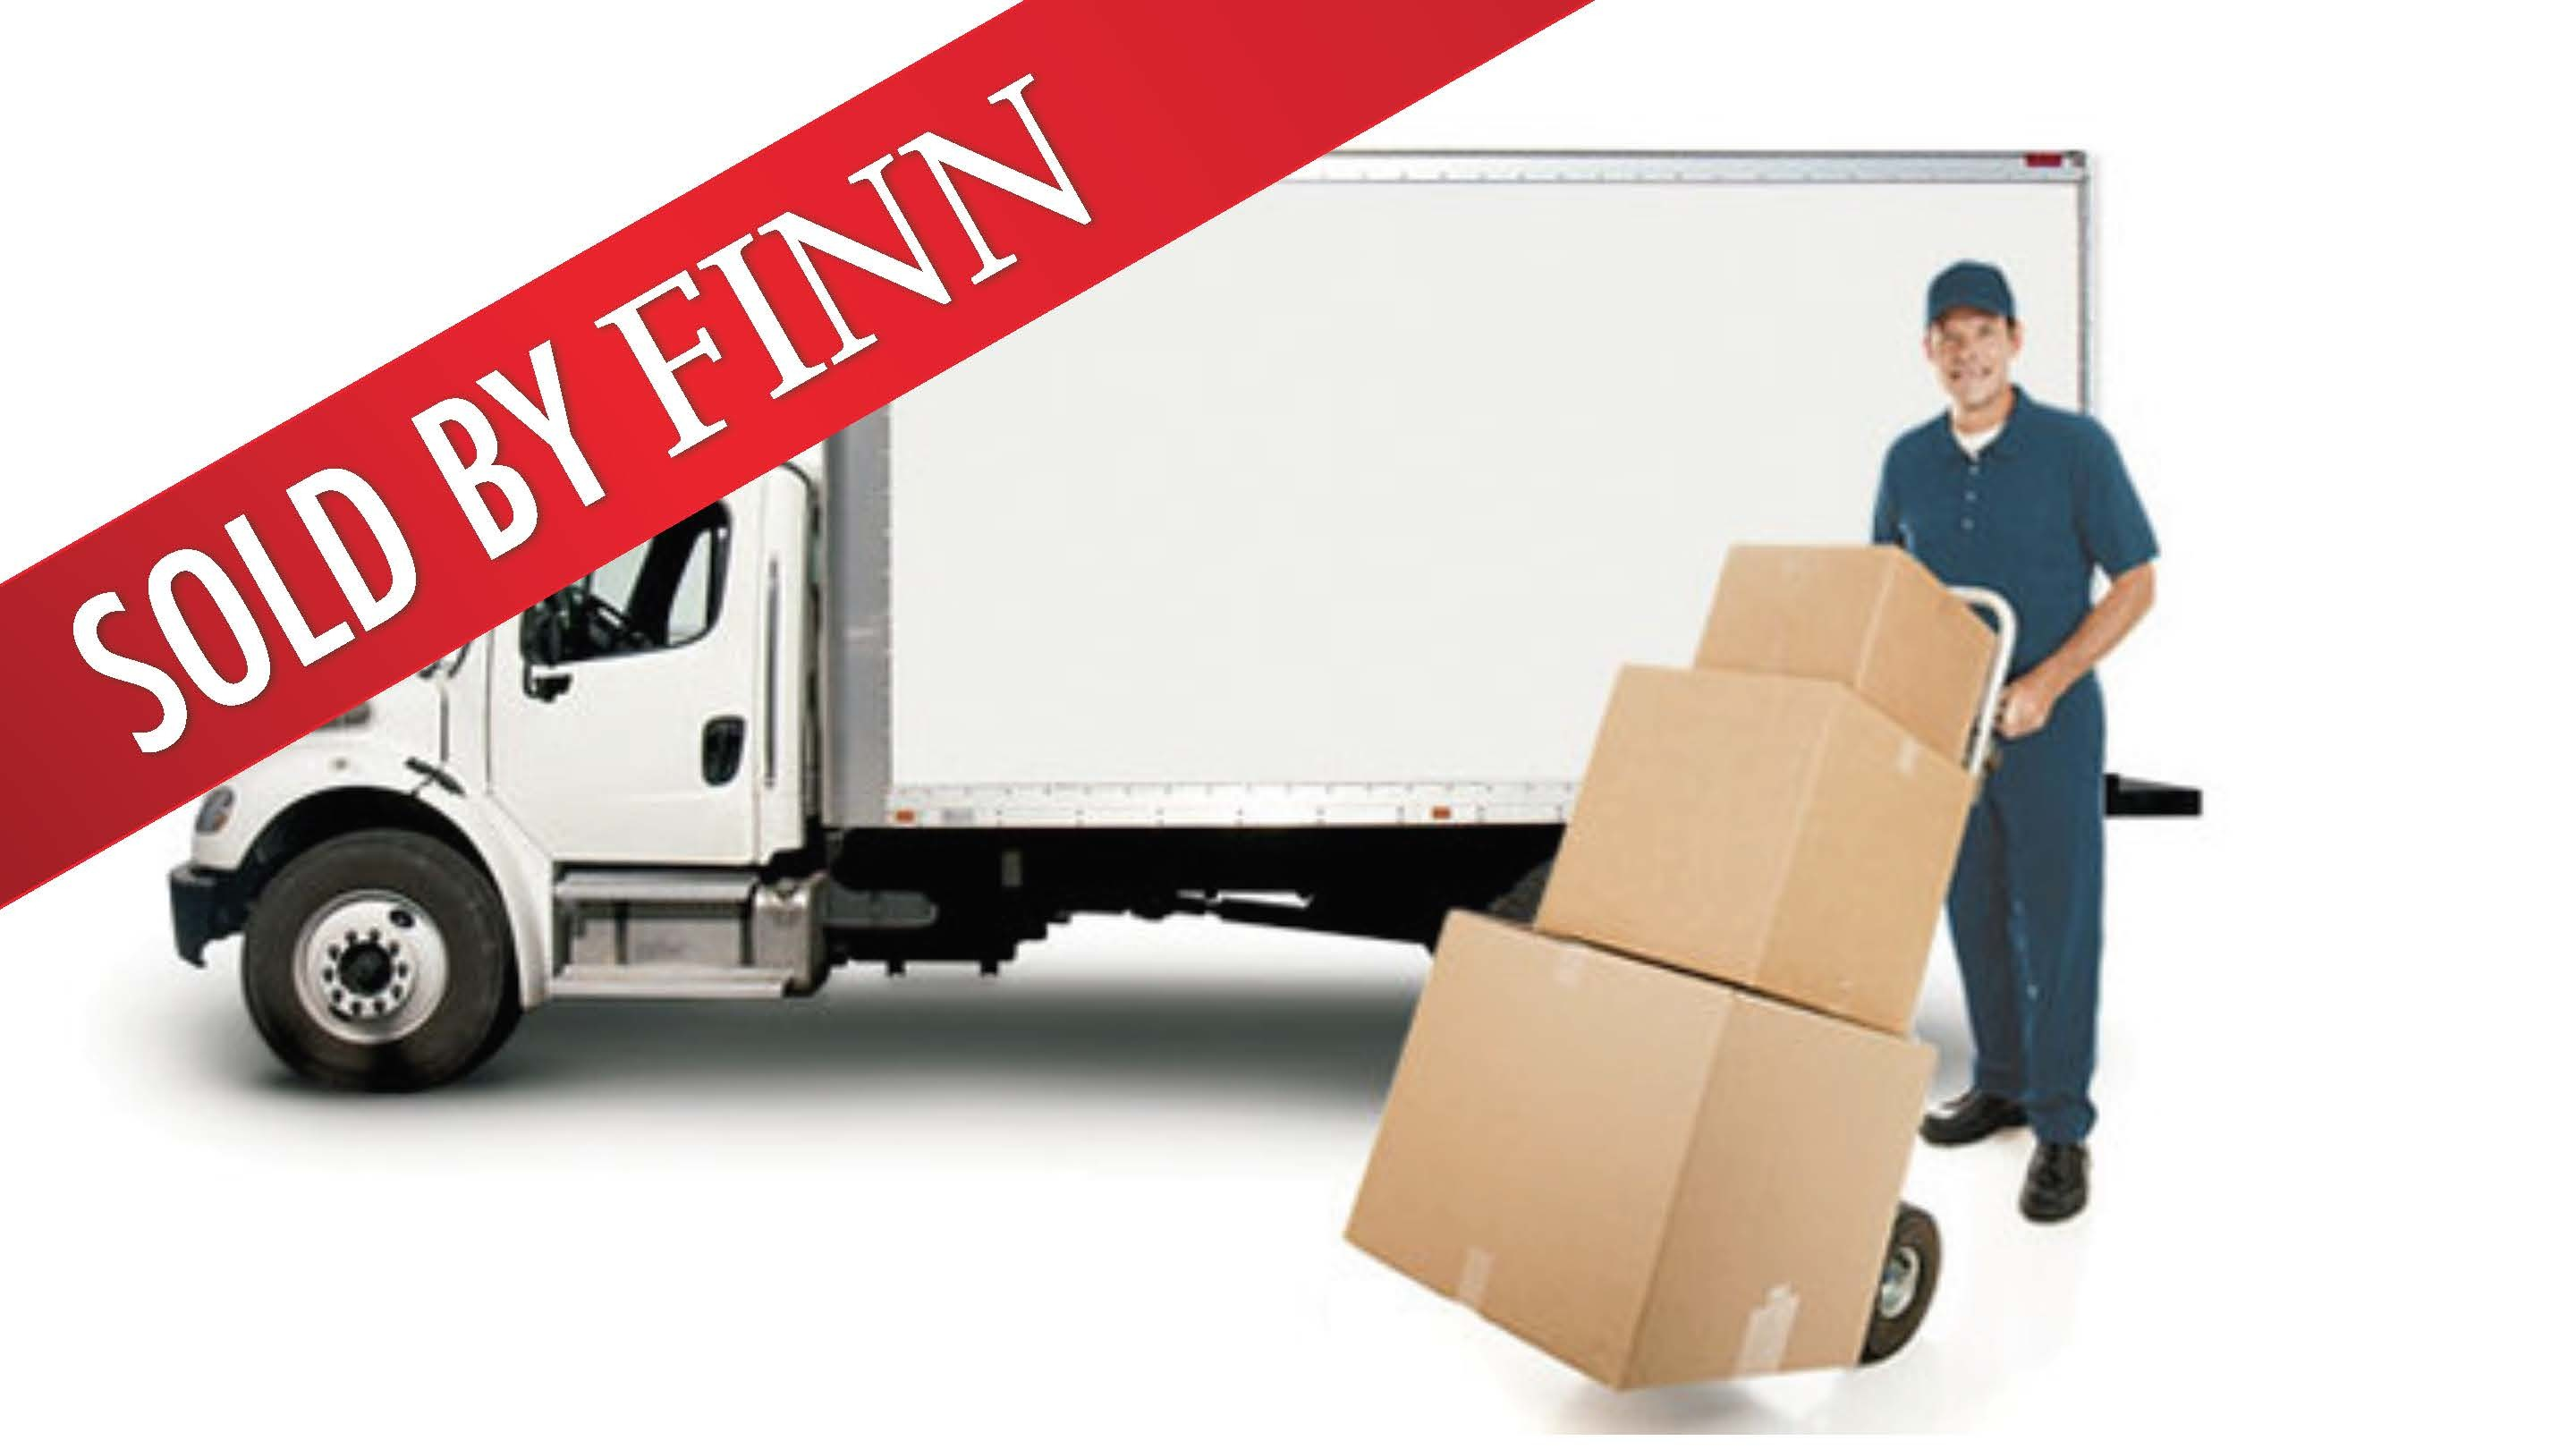 *SOLD*  FURNITURE REMOVAL BUSINESS, HIGH PROFIT, INC.$300K WORTH OF TRUCKS!